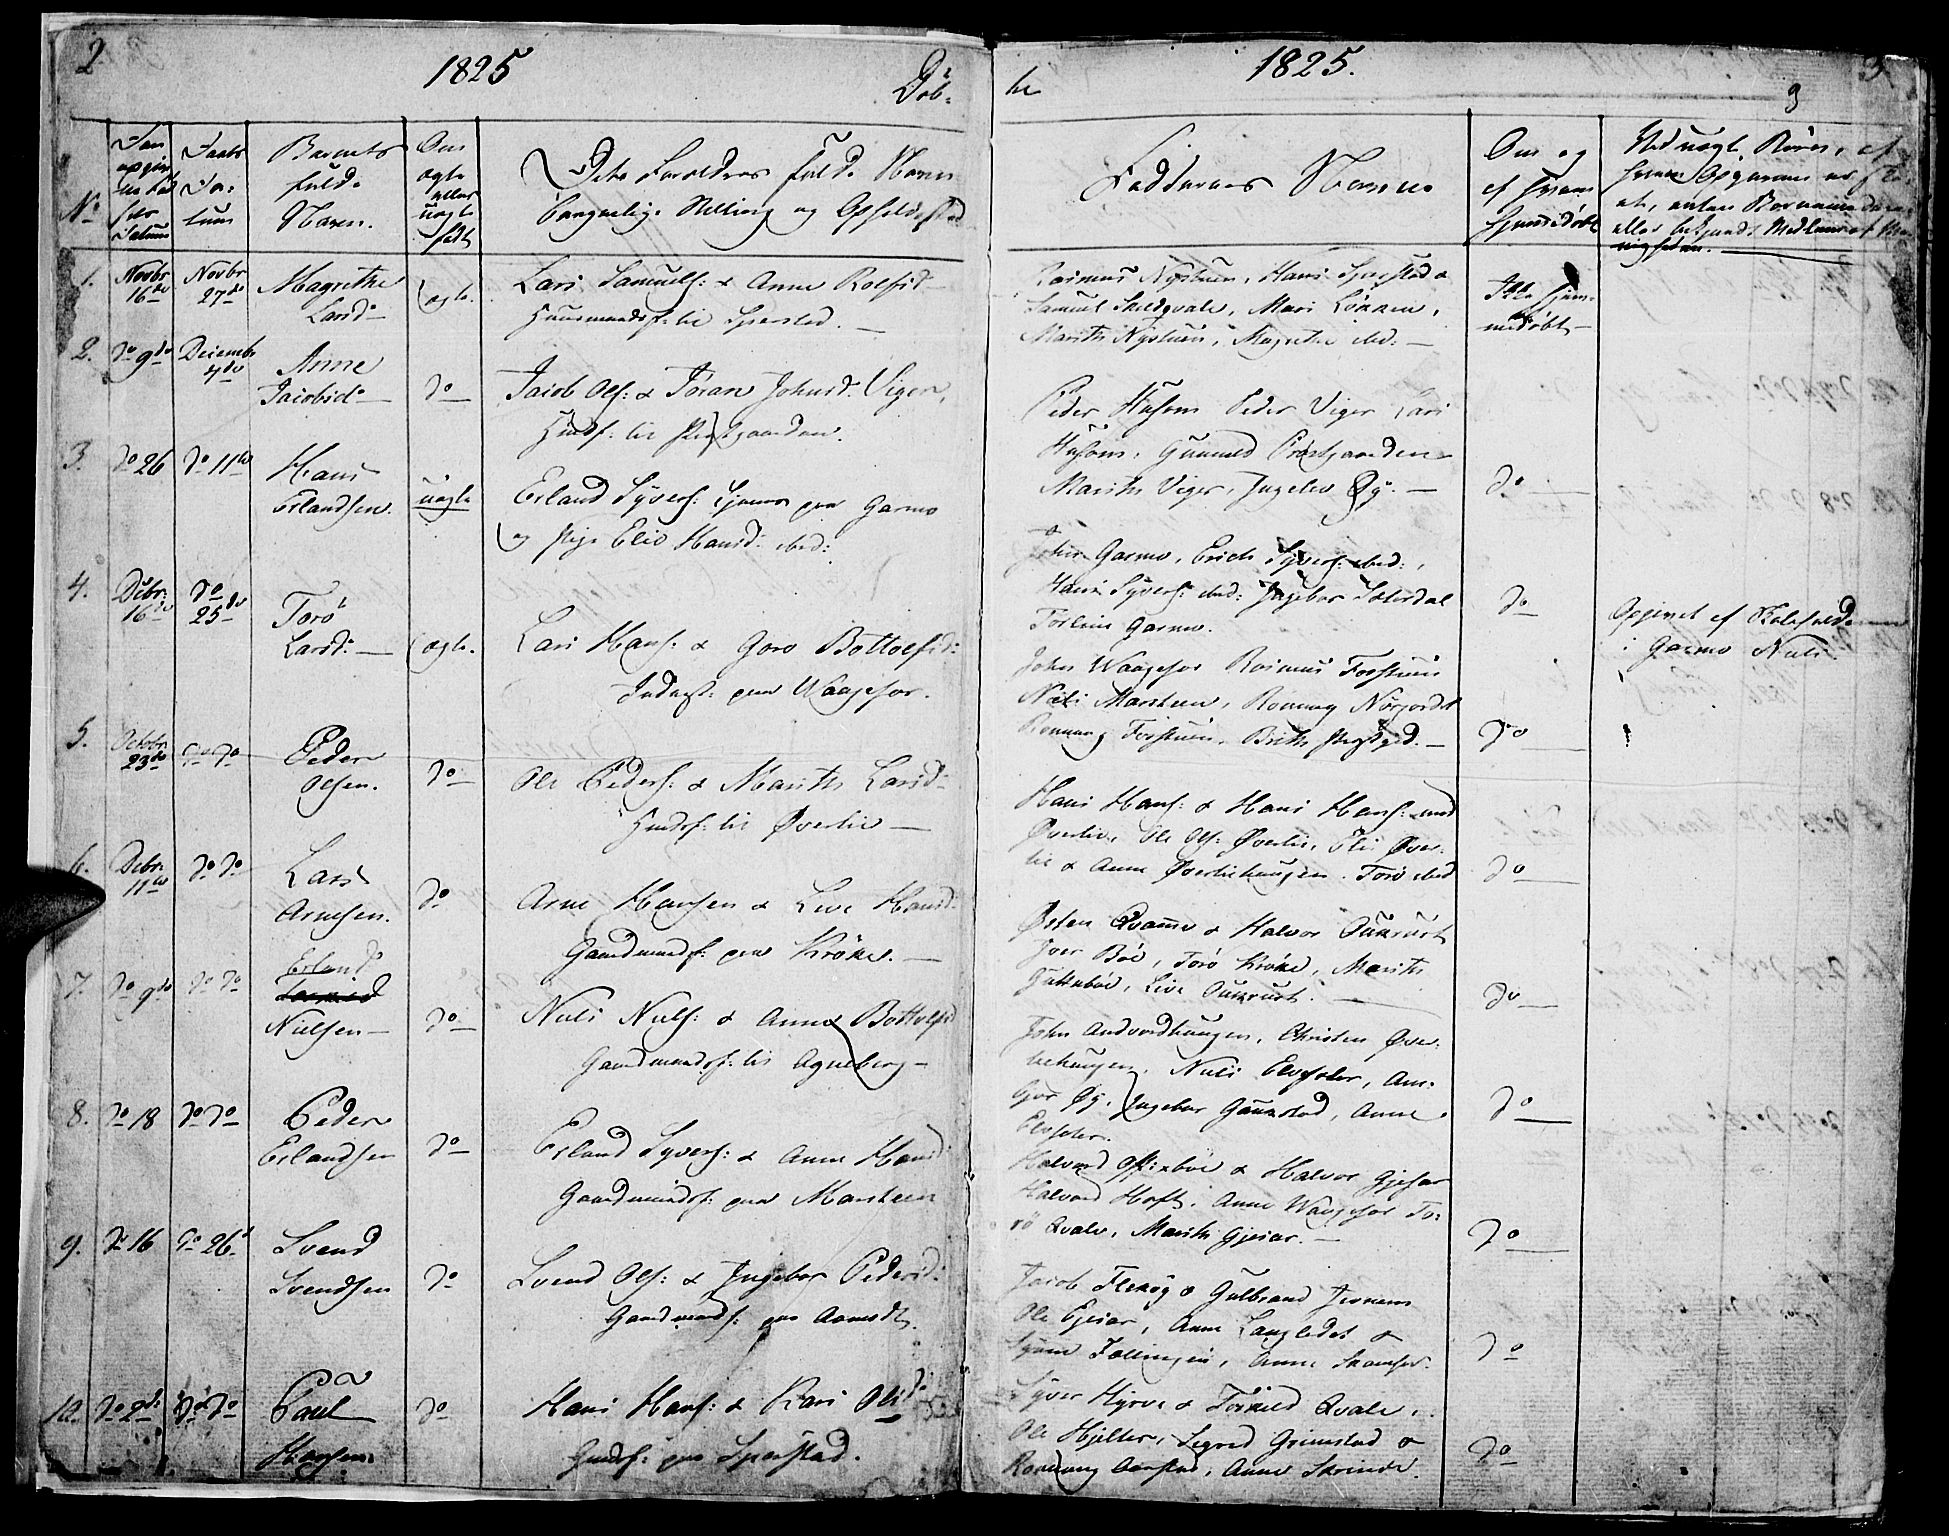 SAH, Lom prestekontor, K/L0005: Parish register (official) no. 5, 1825-1837, p. 2-3